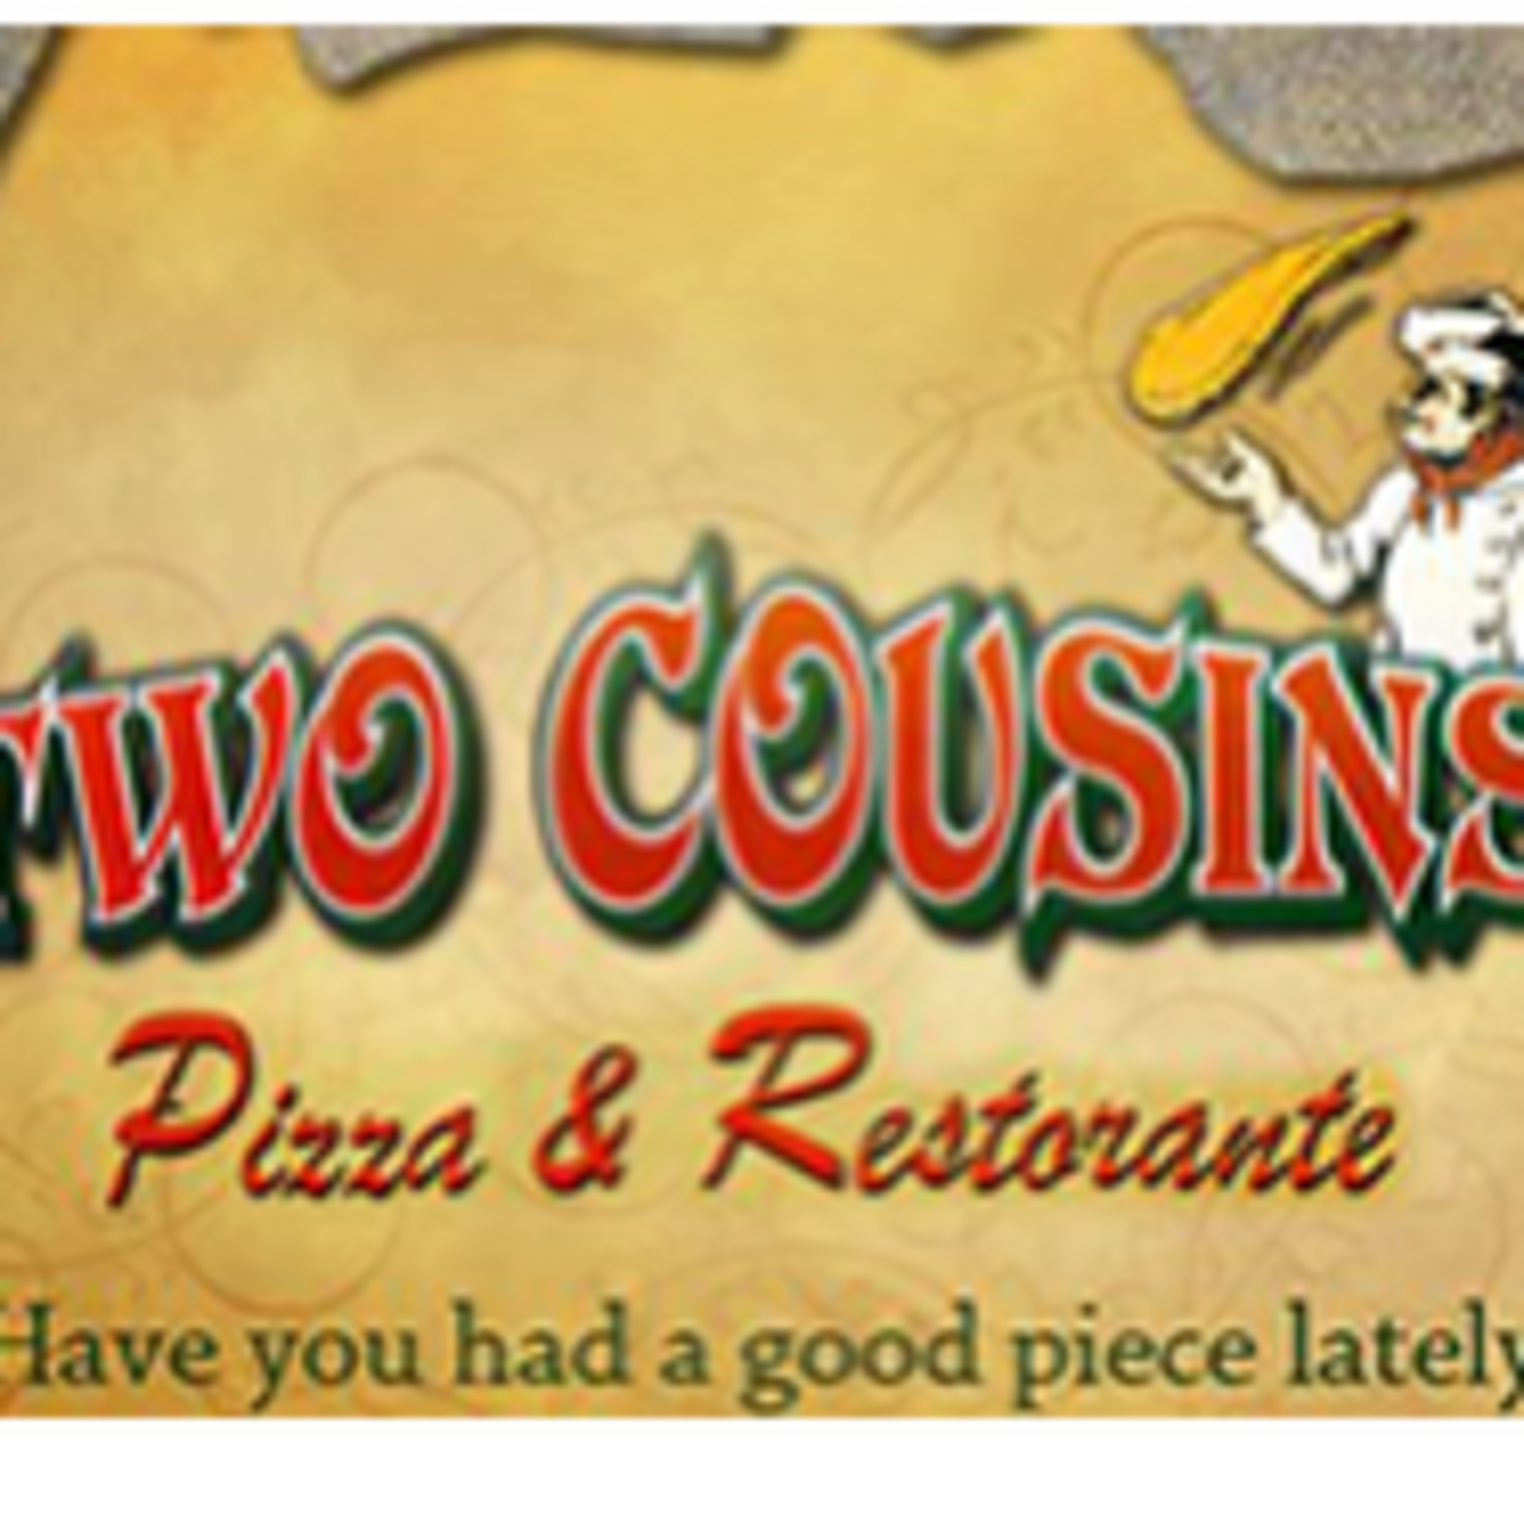 Two Cousins Pizza & Restaurant